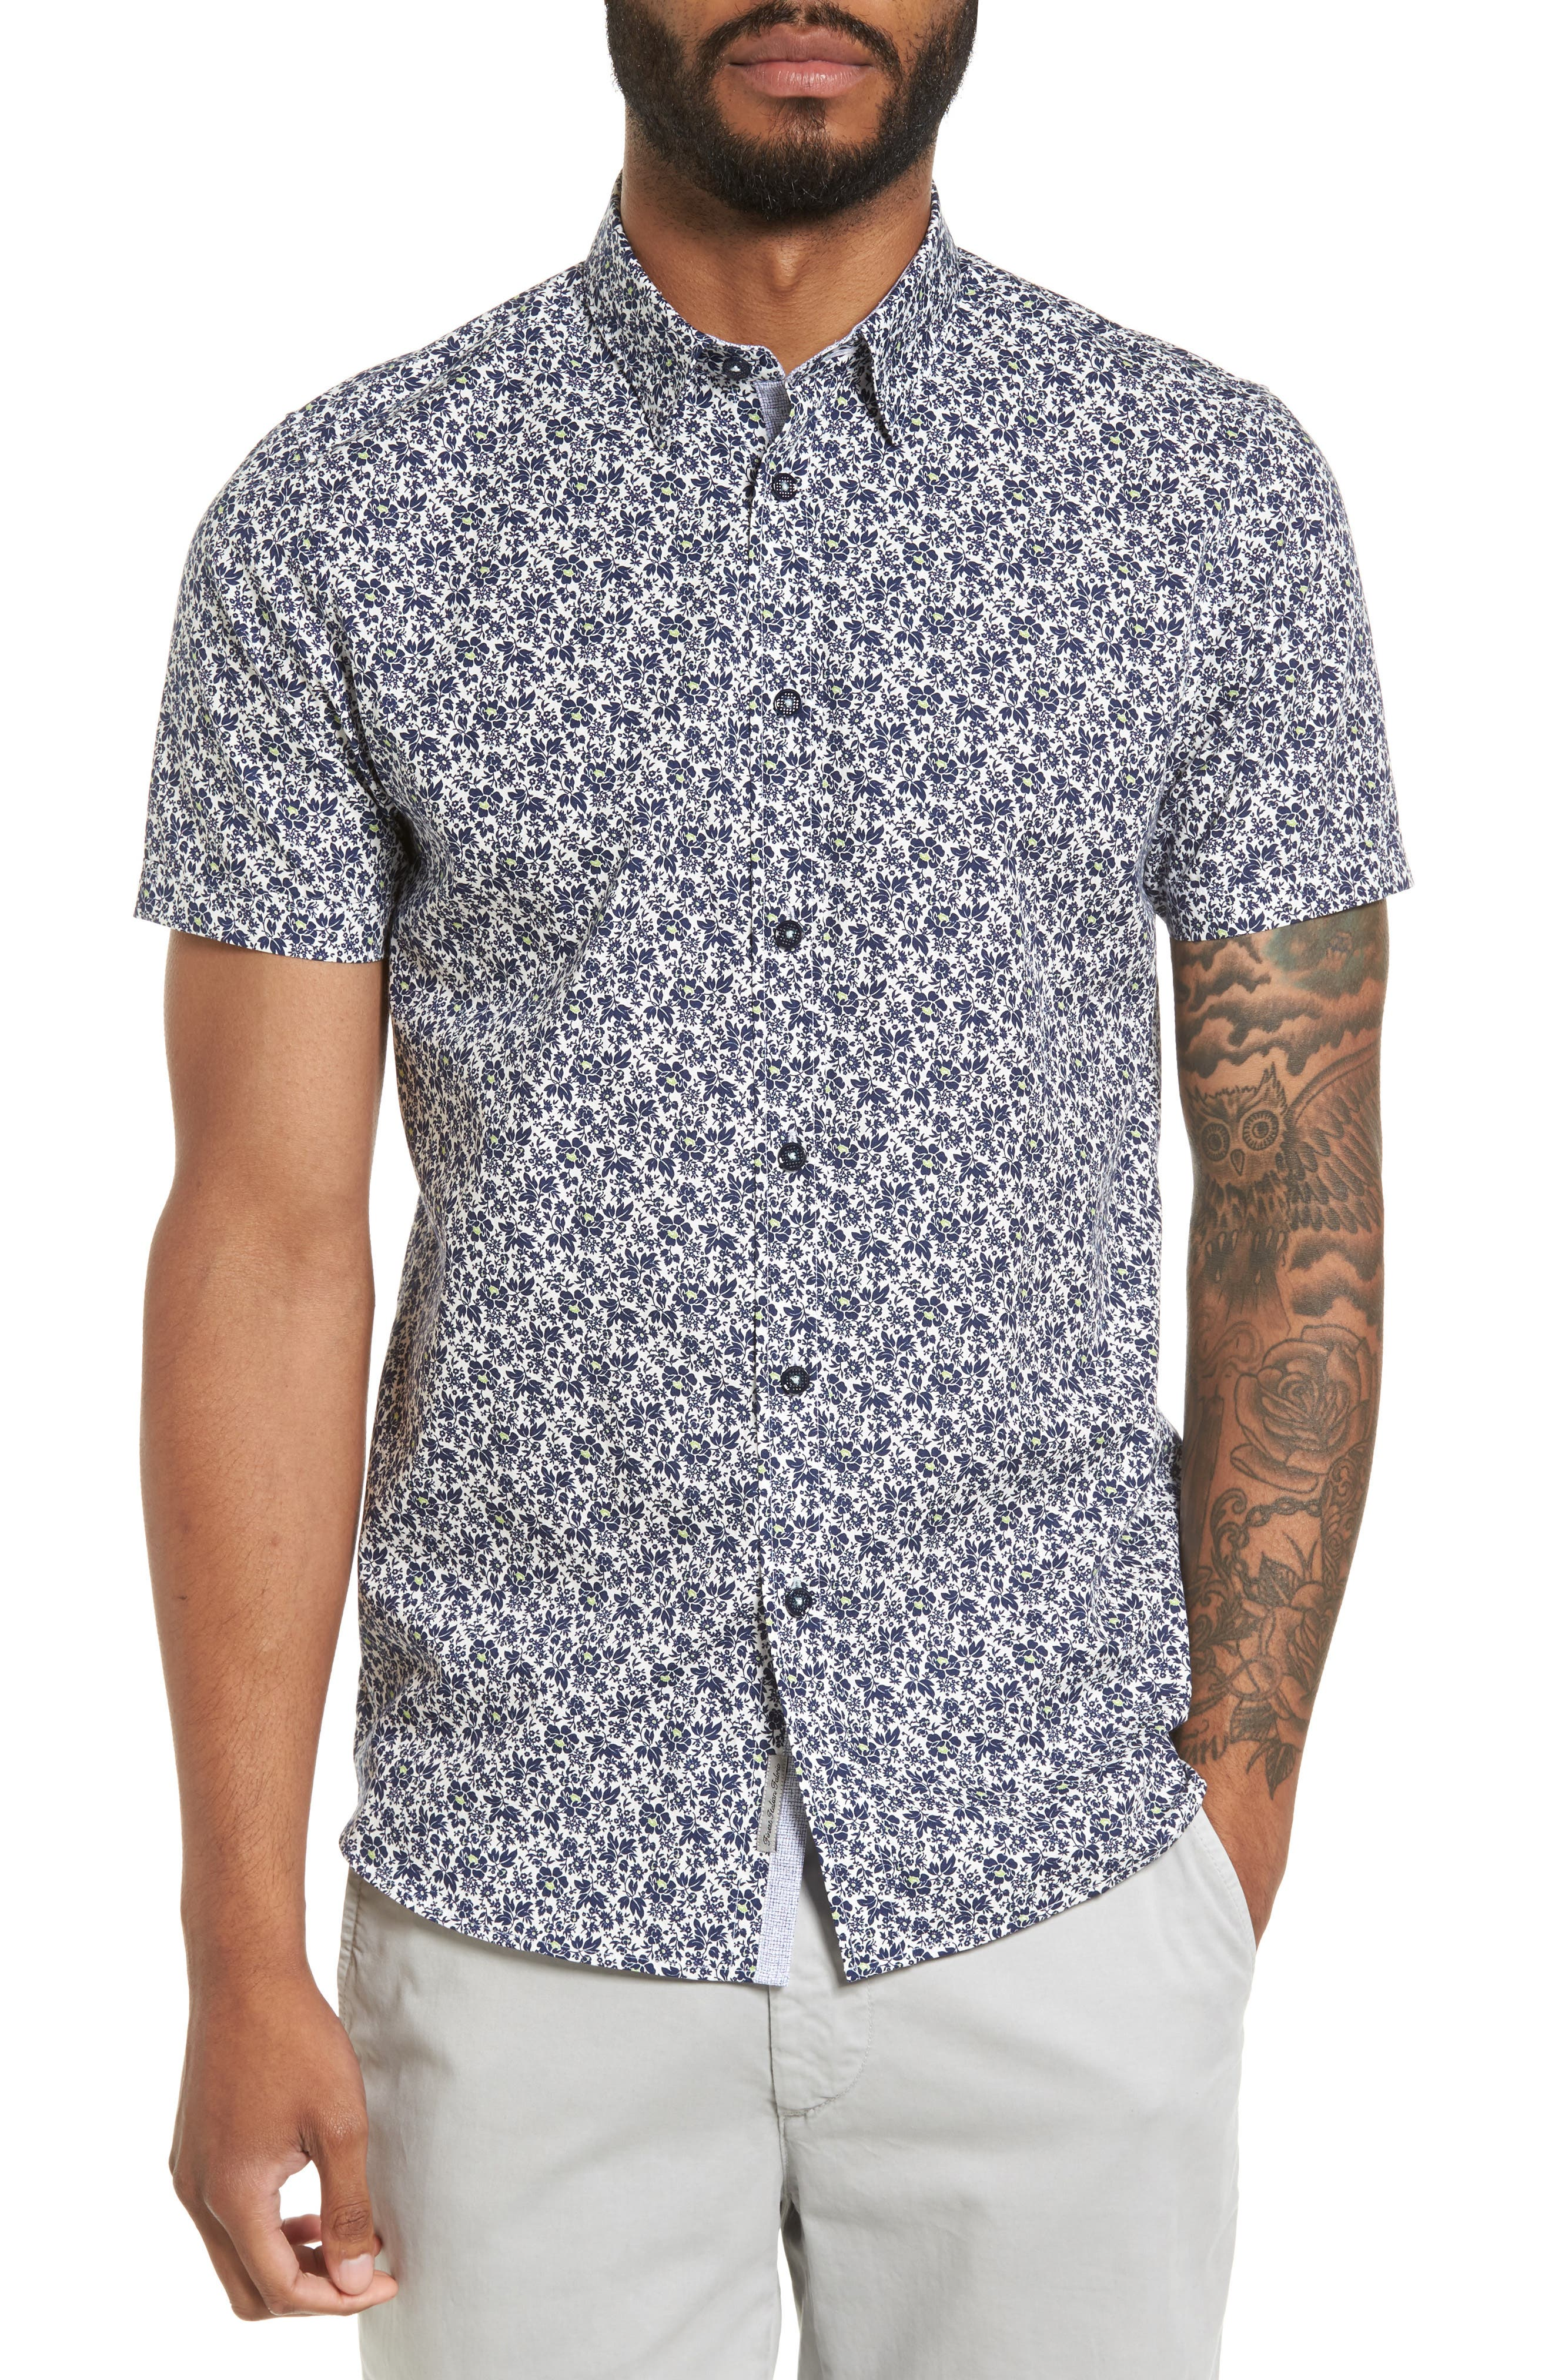 Alygar Slim Fit Floral Woven Shirt,                         Main,                         color, Dark Blue